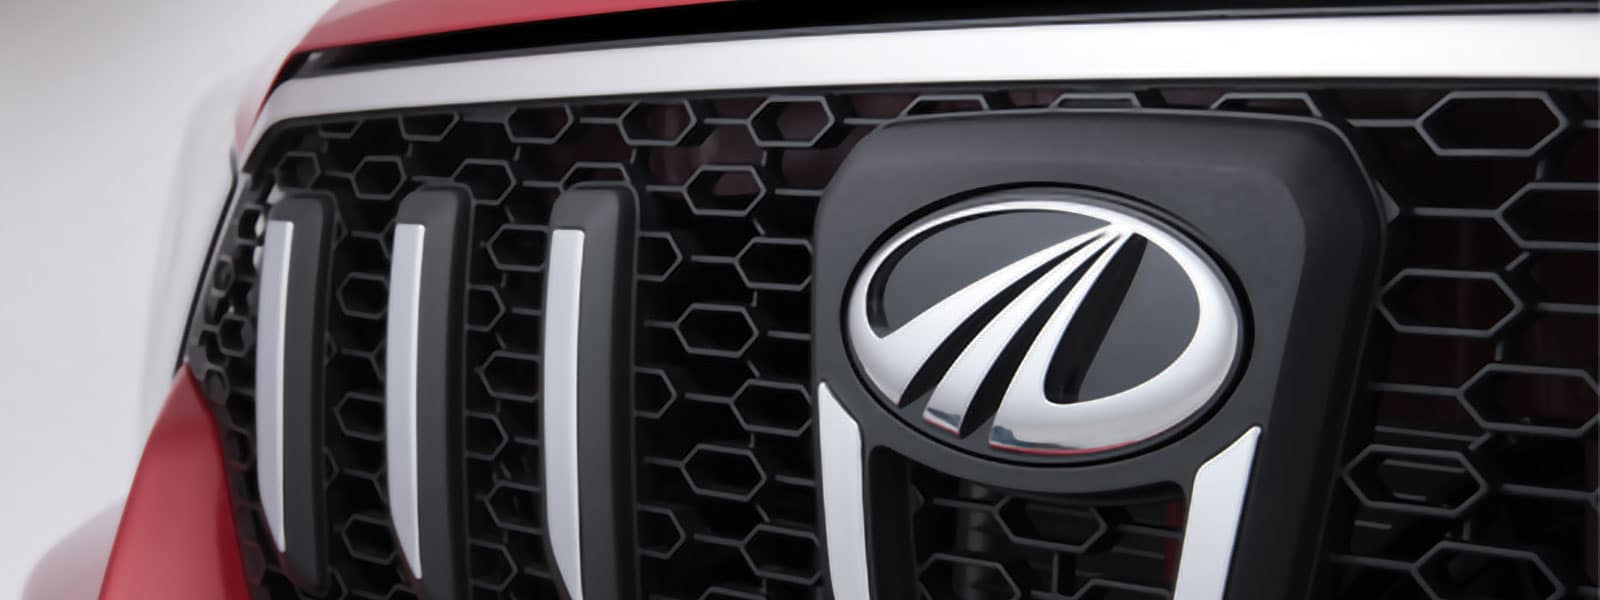 Restyled signature grille